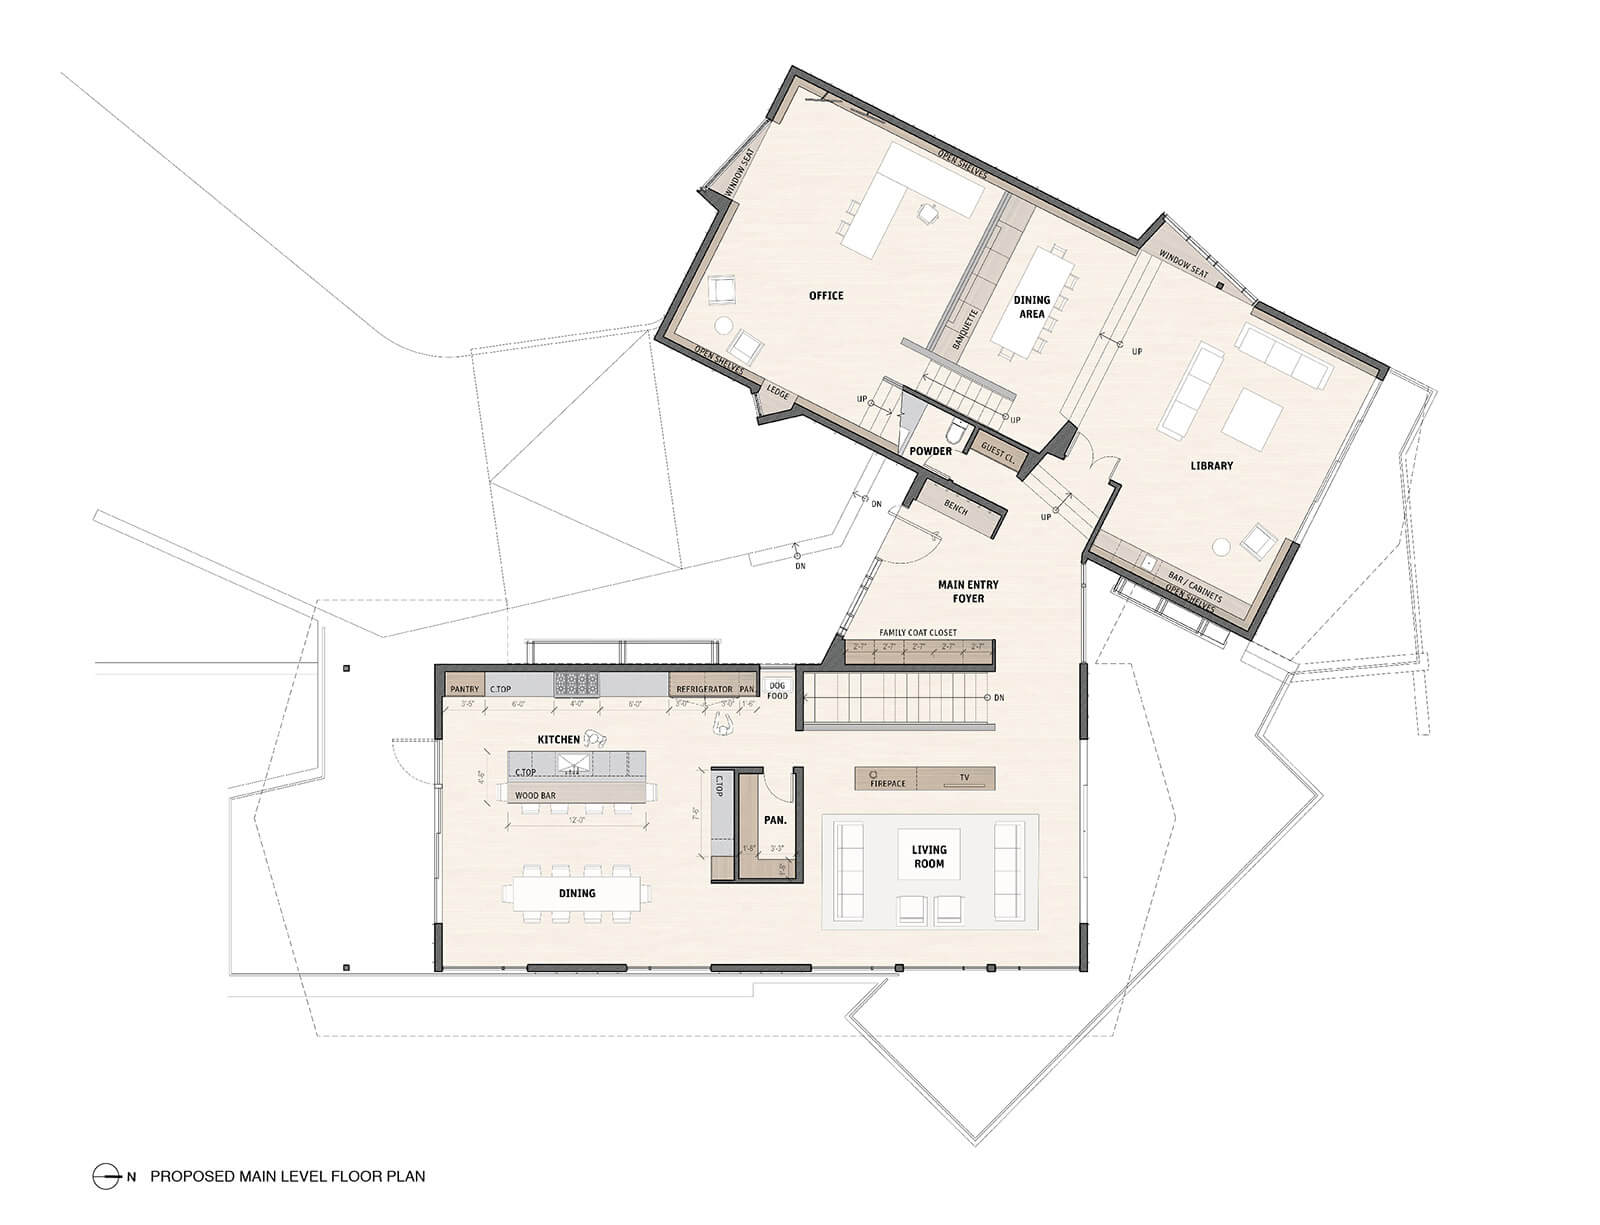 studio vara residential woodside ii drawing upper level plan